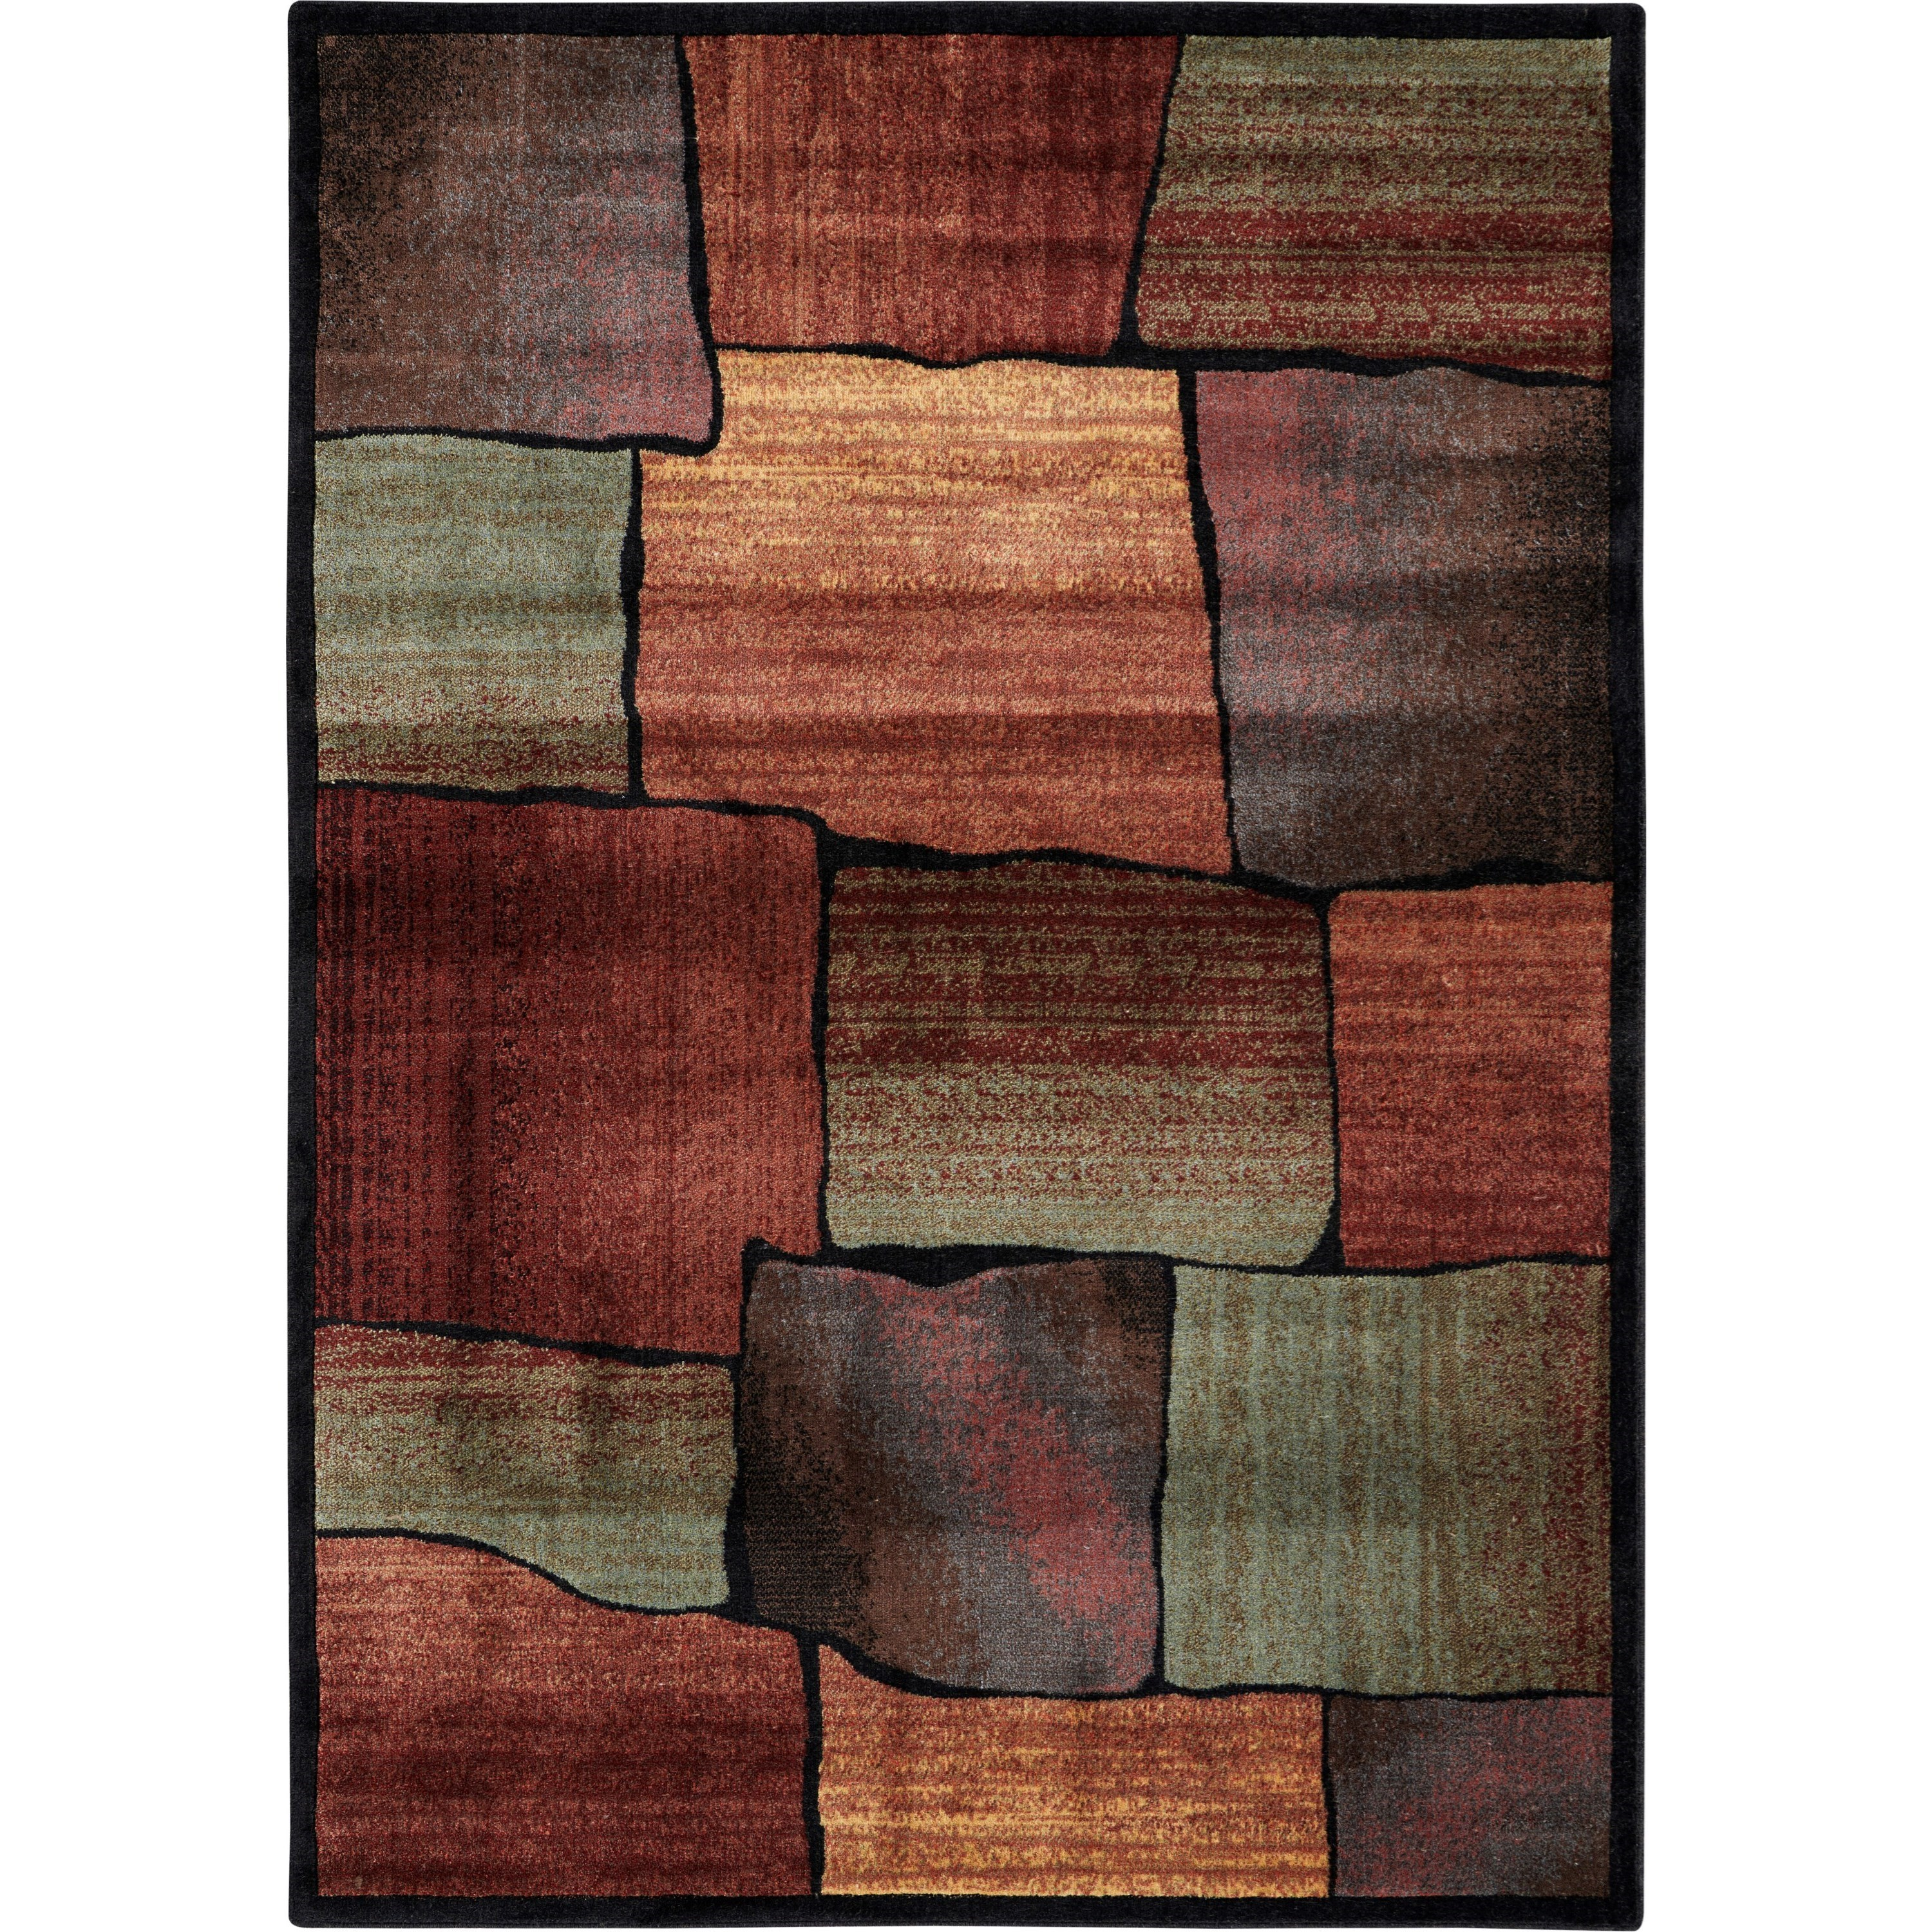 Expressions 2020 4' x 6' Rug by Nourison at Home Collections Furniture